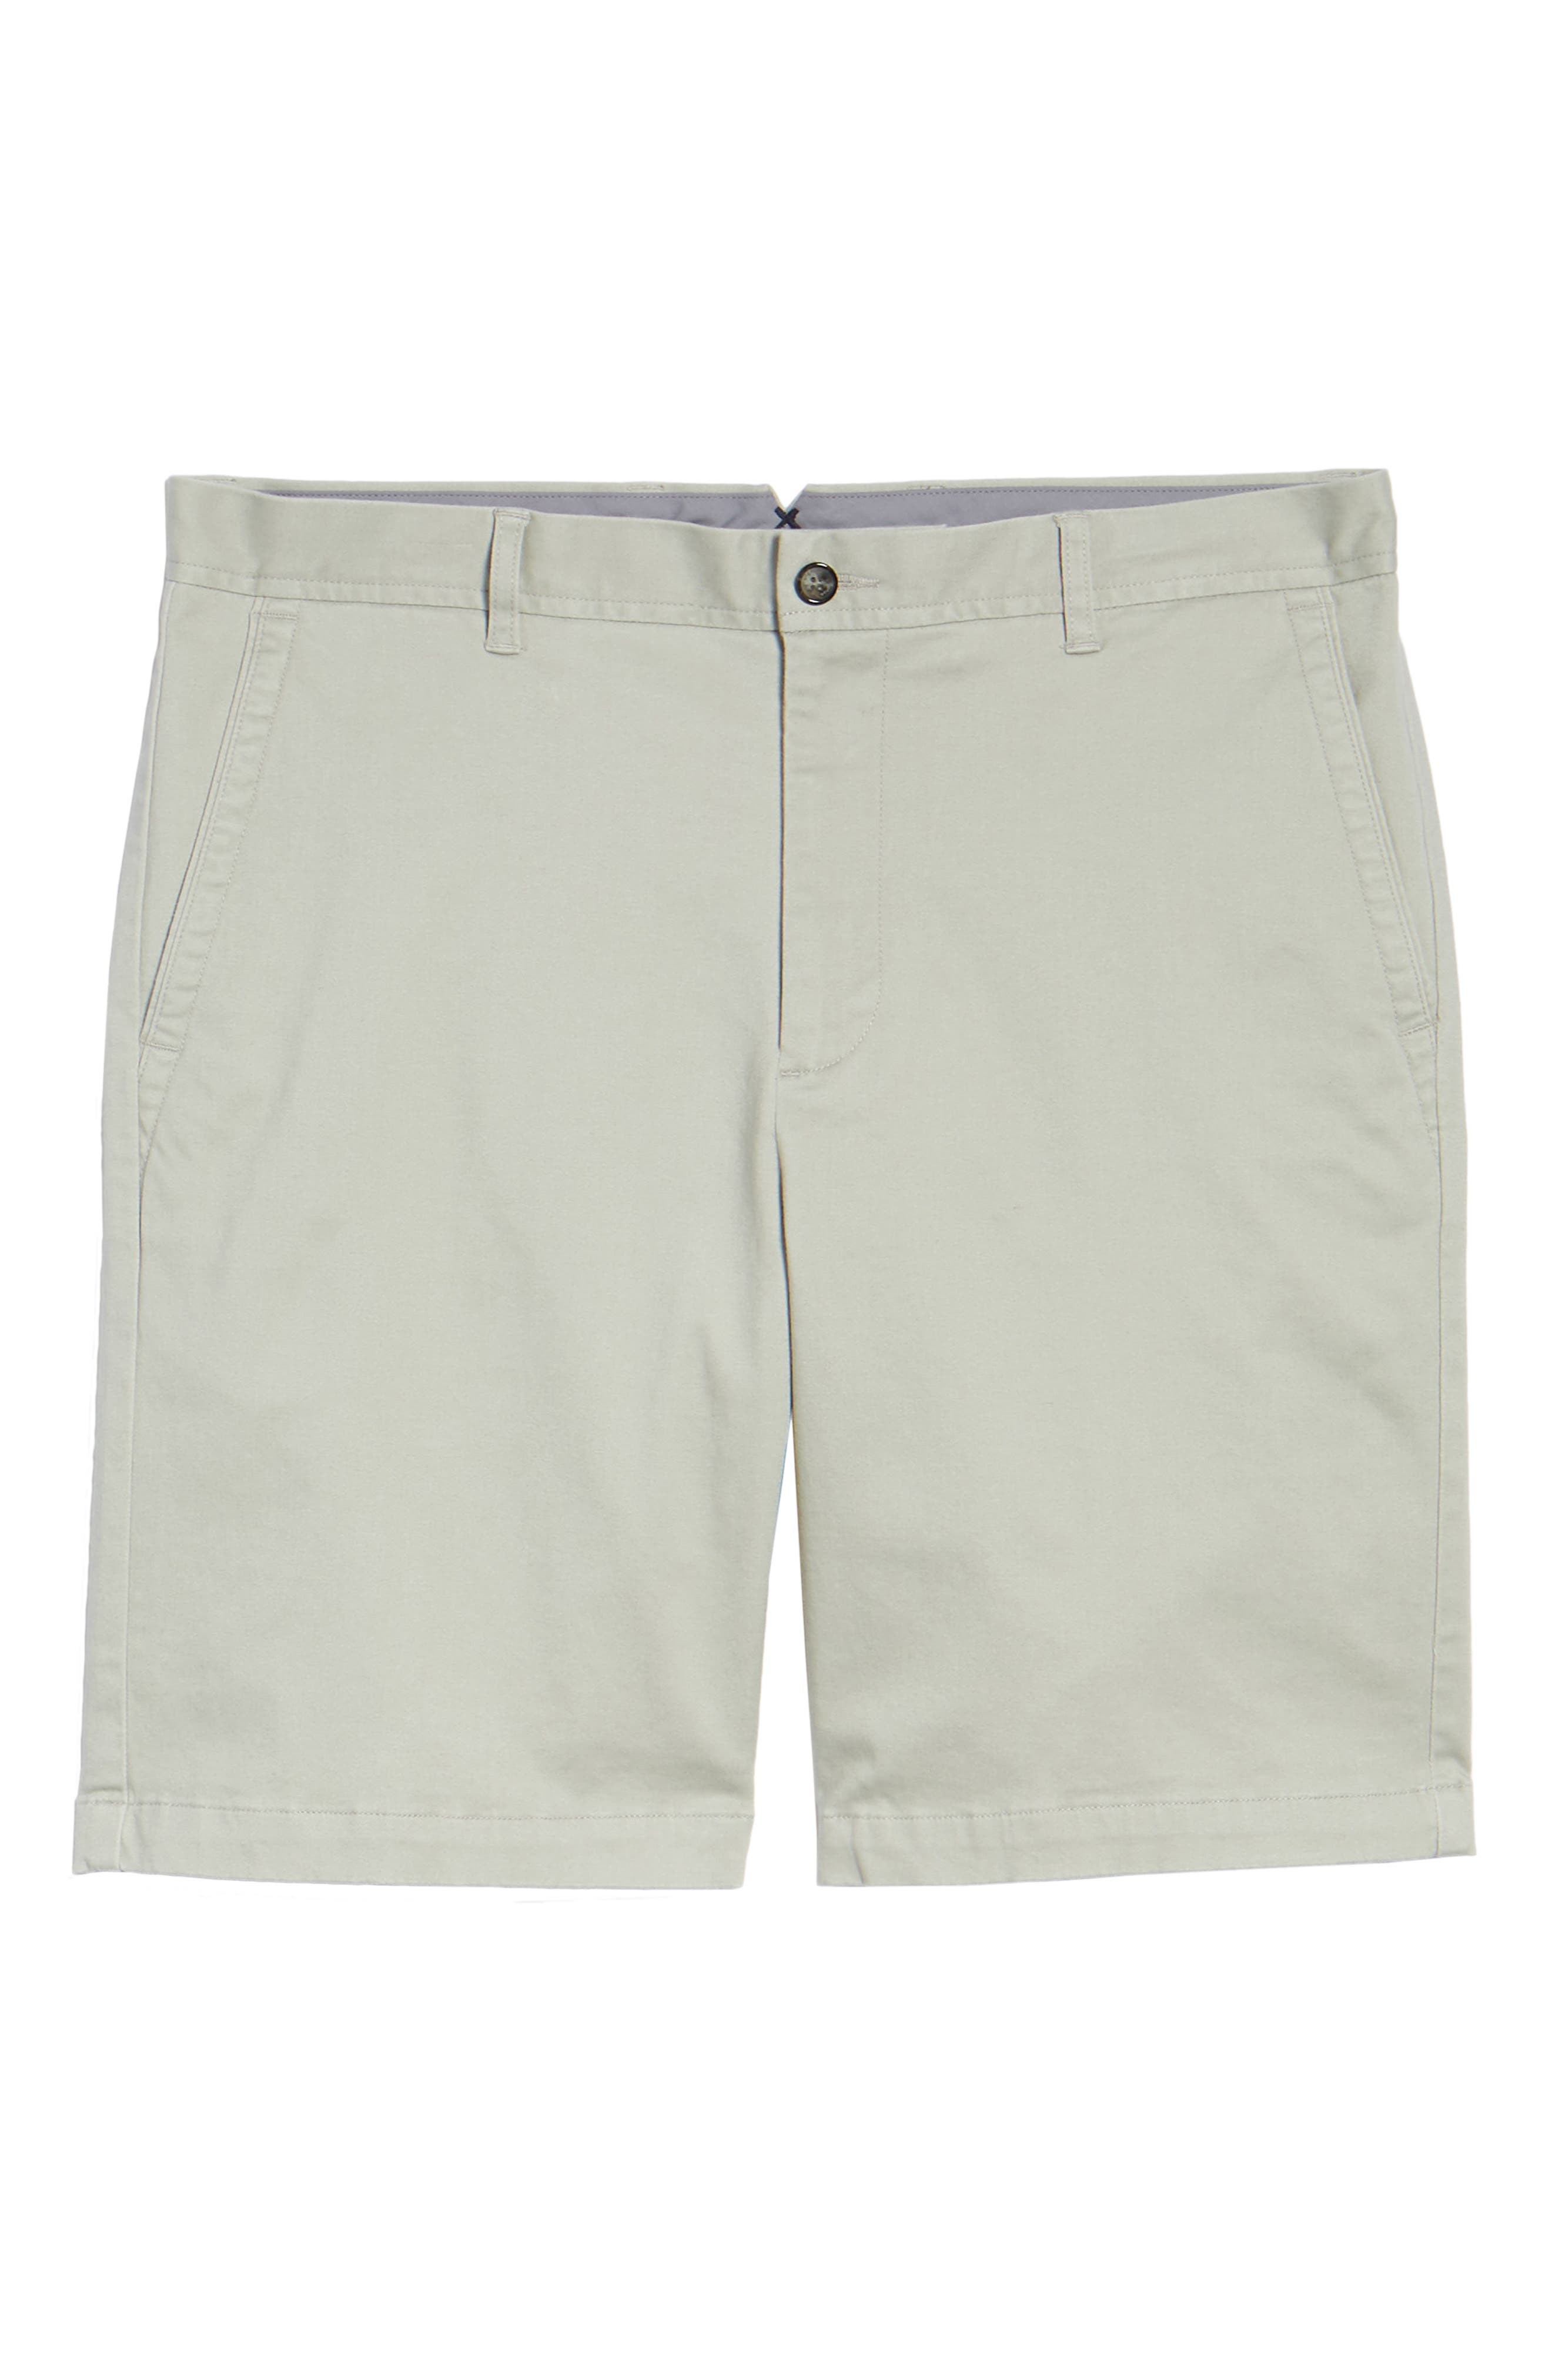 St. Charles Stretch Twill Shorts,                             Alternate thumbnail 6, color,                             051